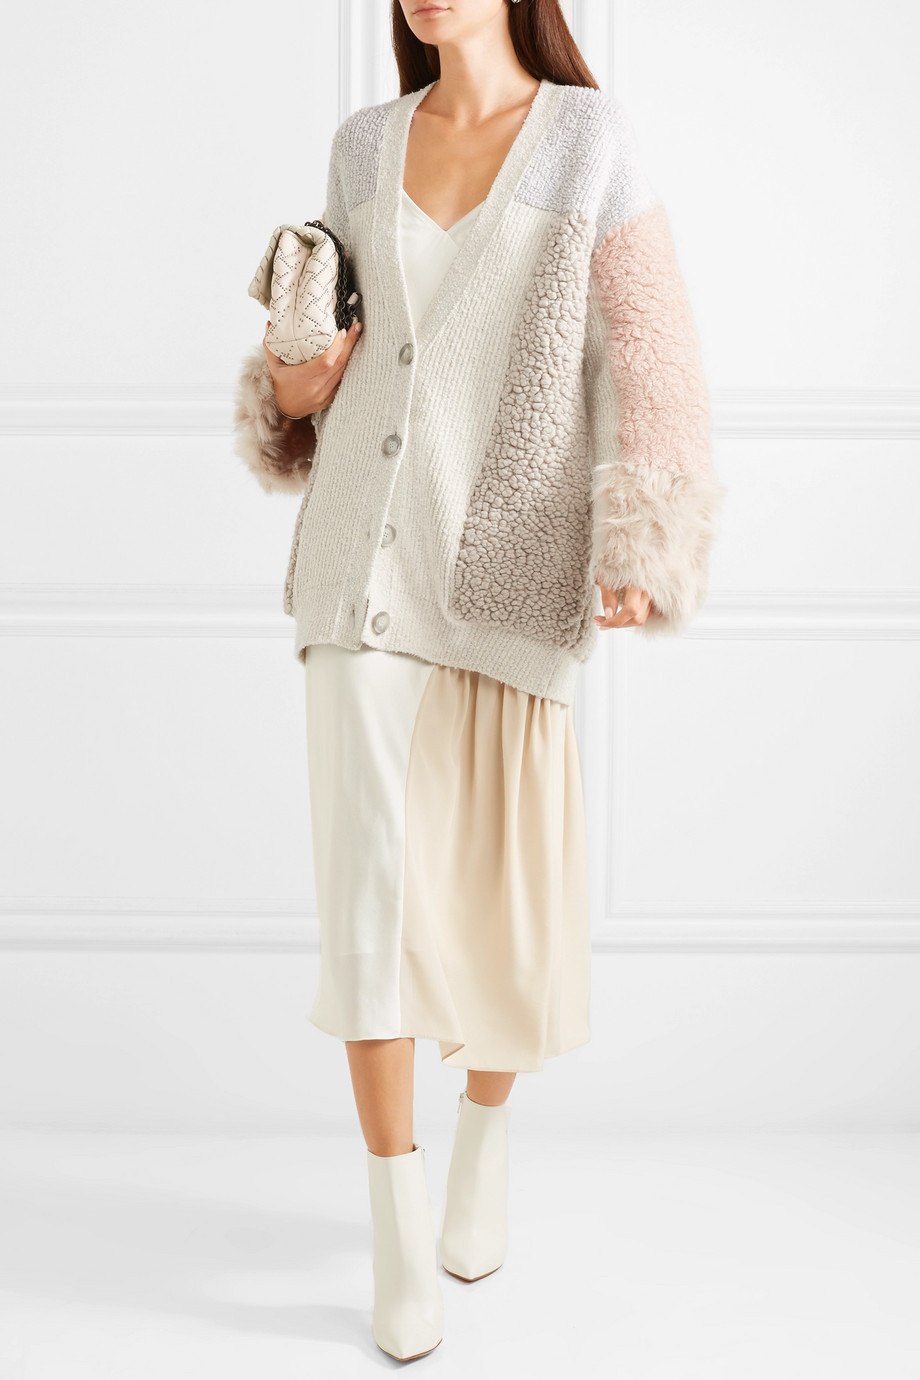 Stella McCartney Oversized patchwork cotton-blend and faux fur cardigan $1,315